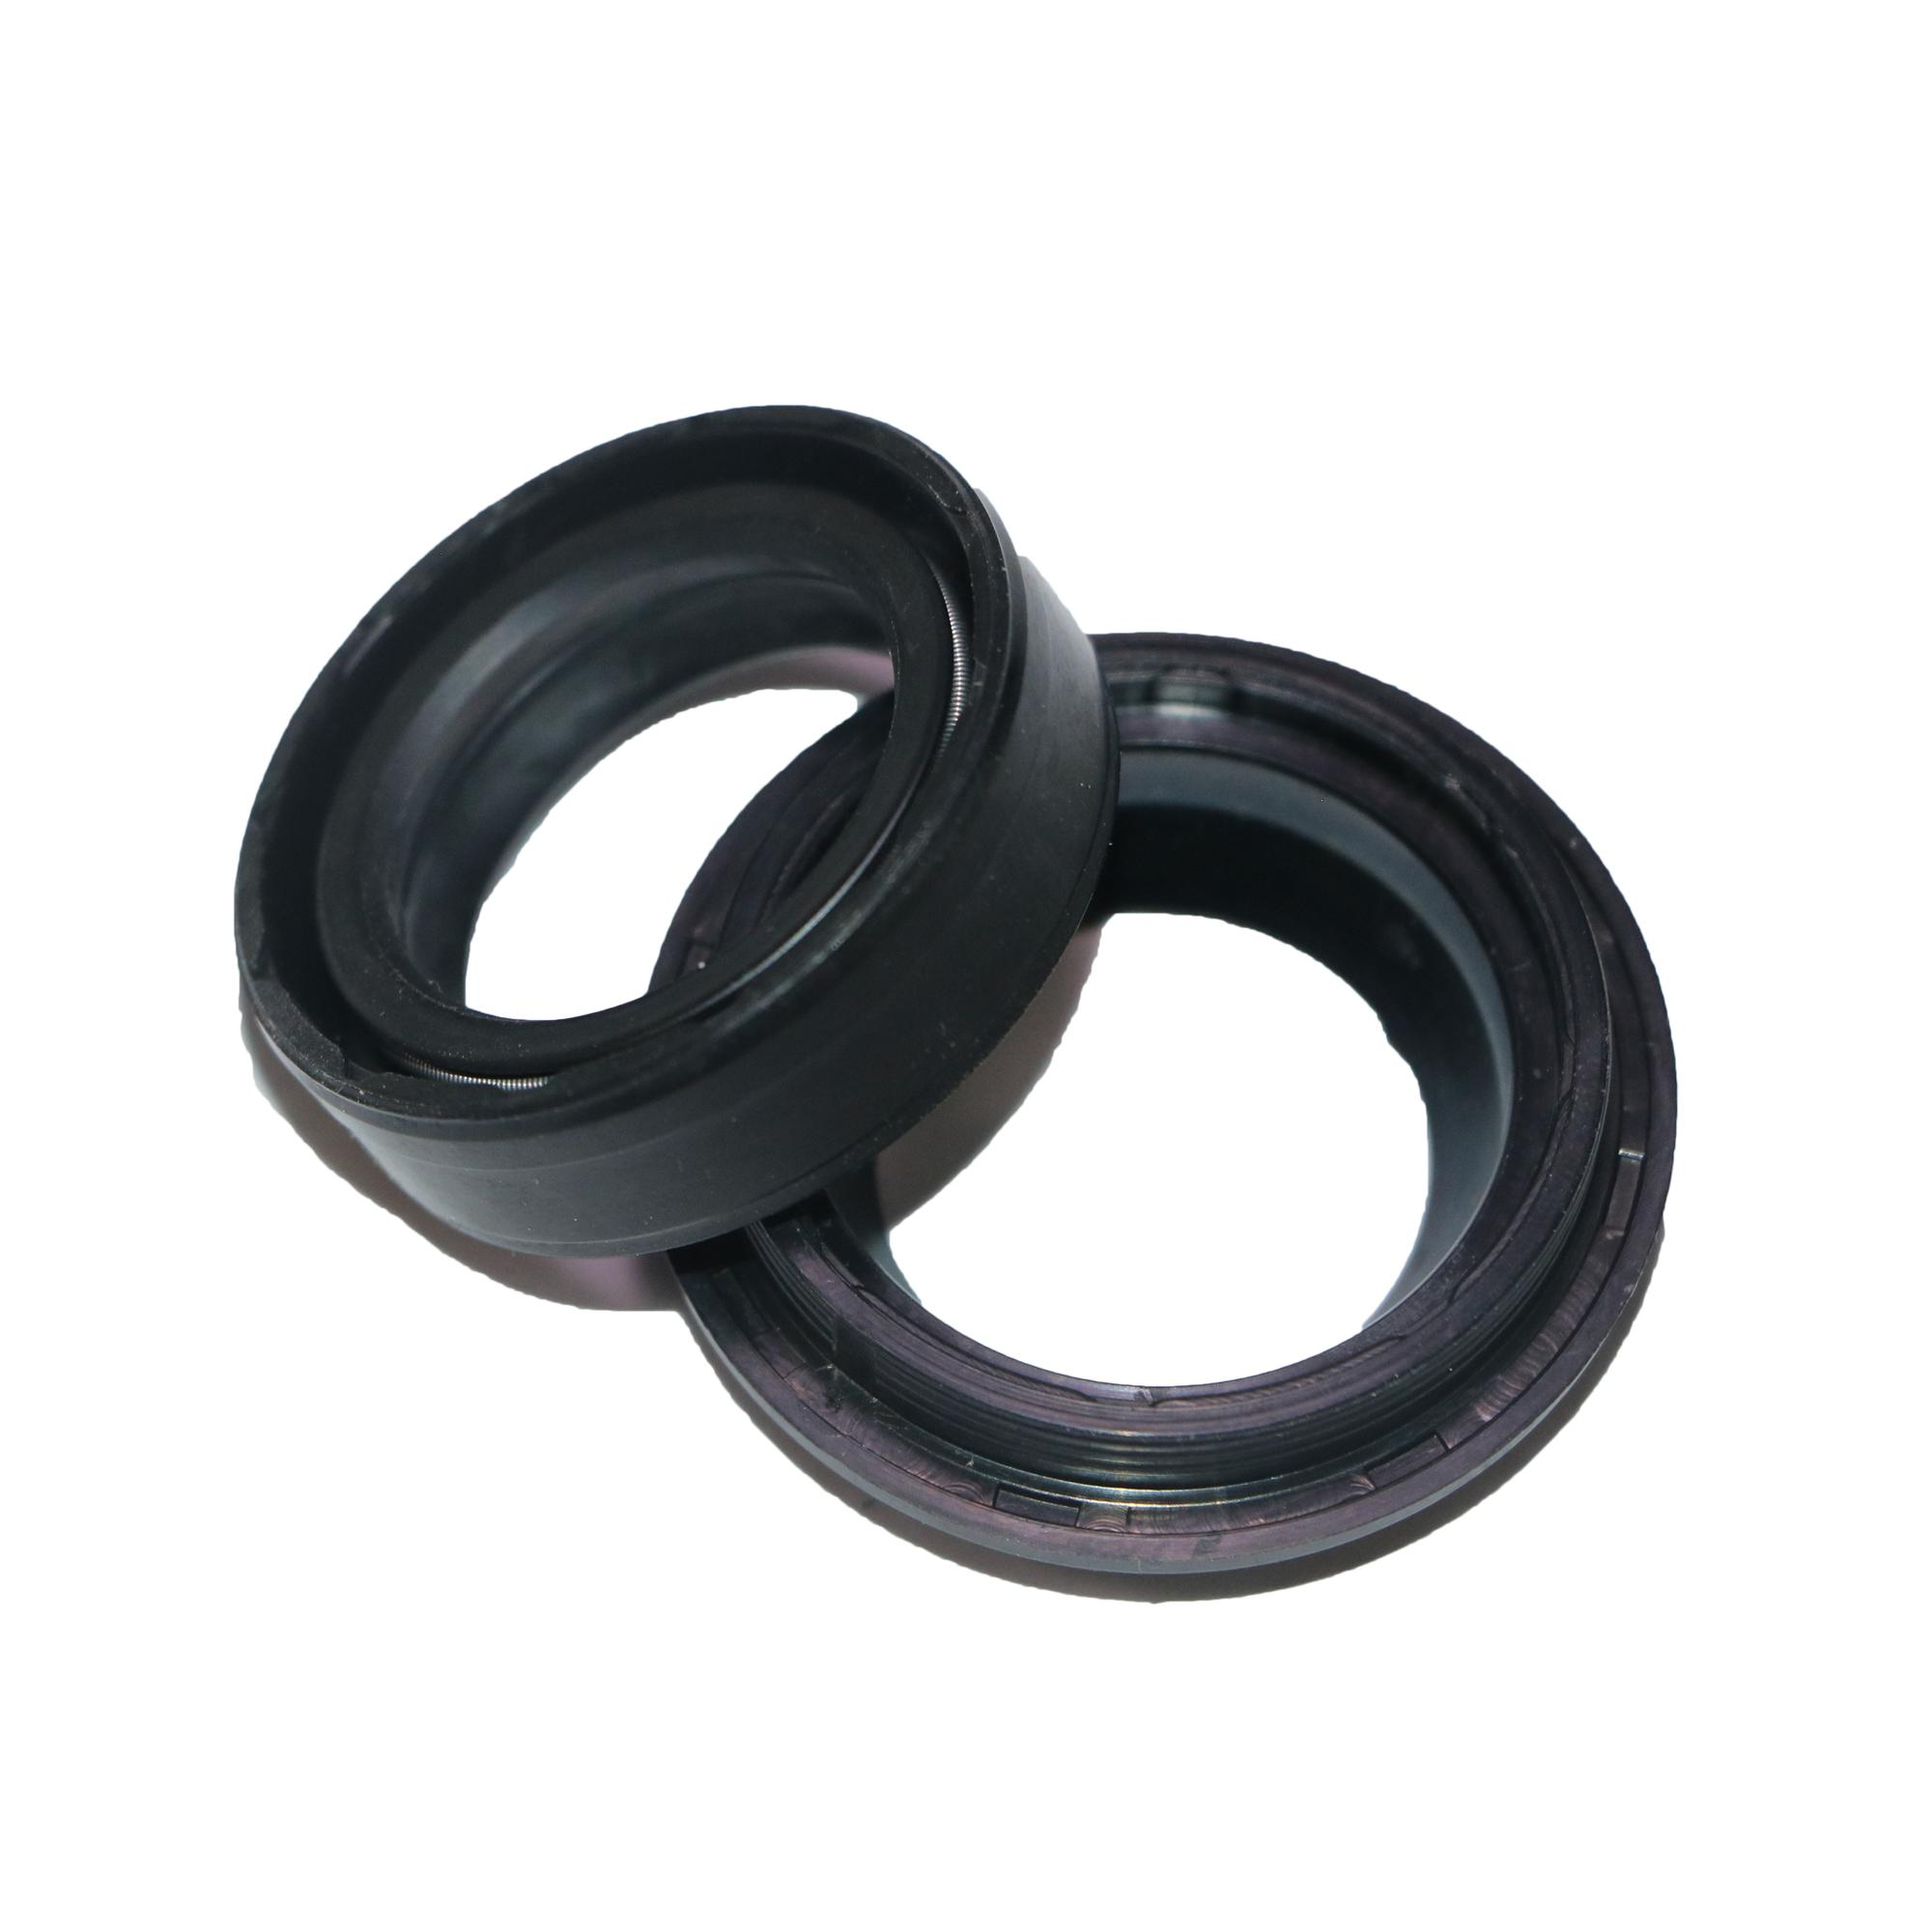 Alisgpfront Fork Oil Seal Shock Ct100 9853-591 By Skypoint Motors.